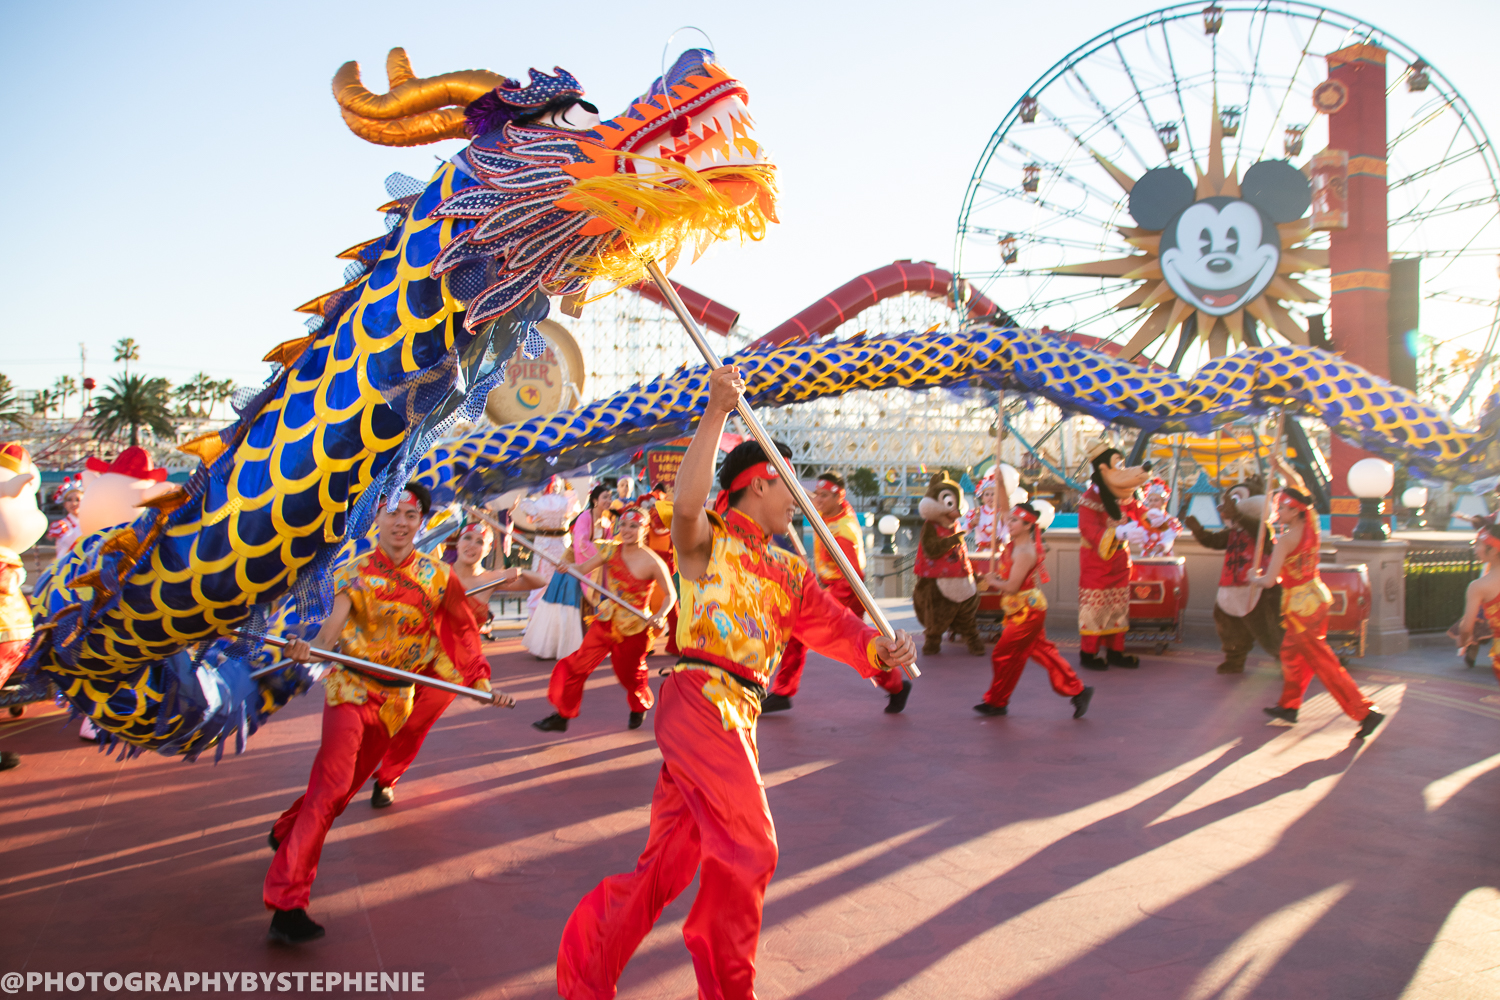 Disney Food And Wine Festival 2020 Dates.Micechat Disney California Food Wine Festival